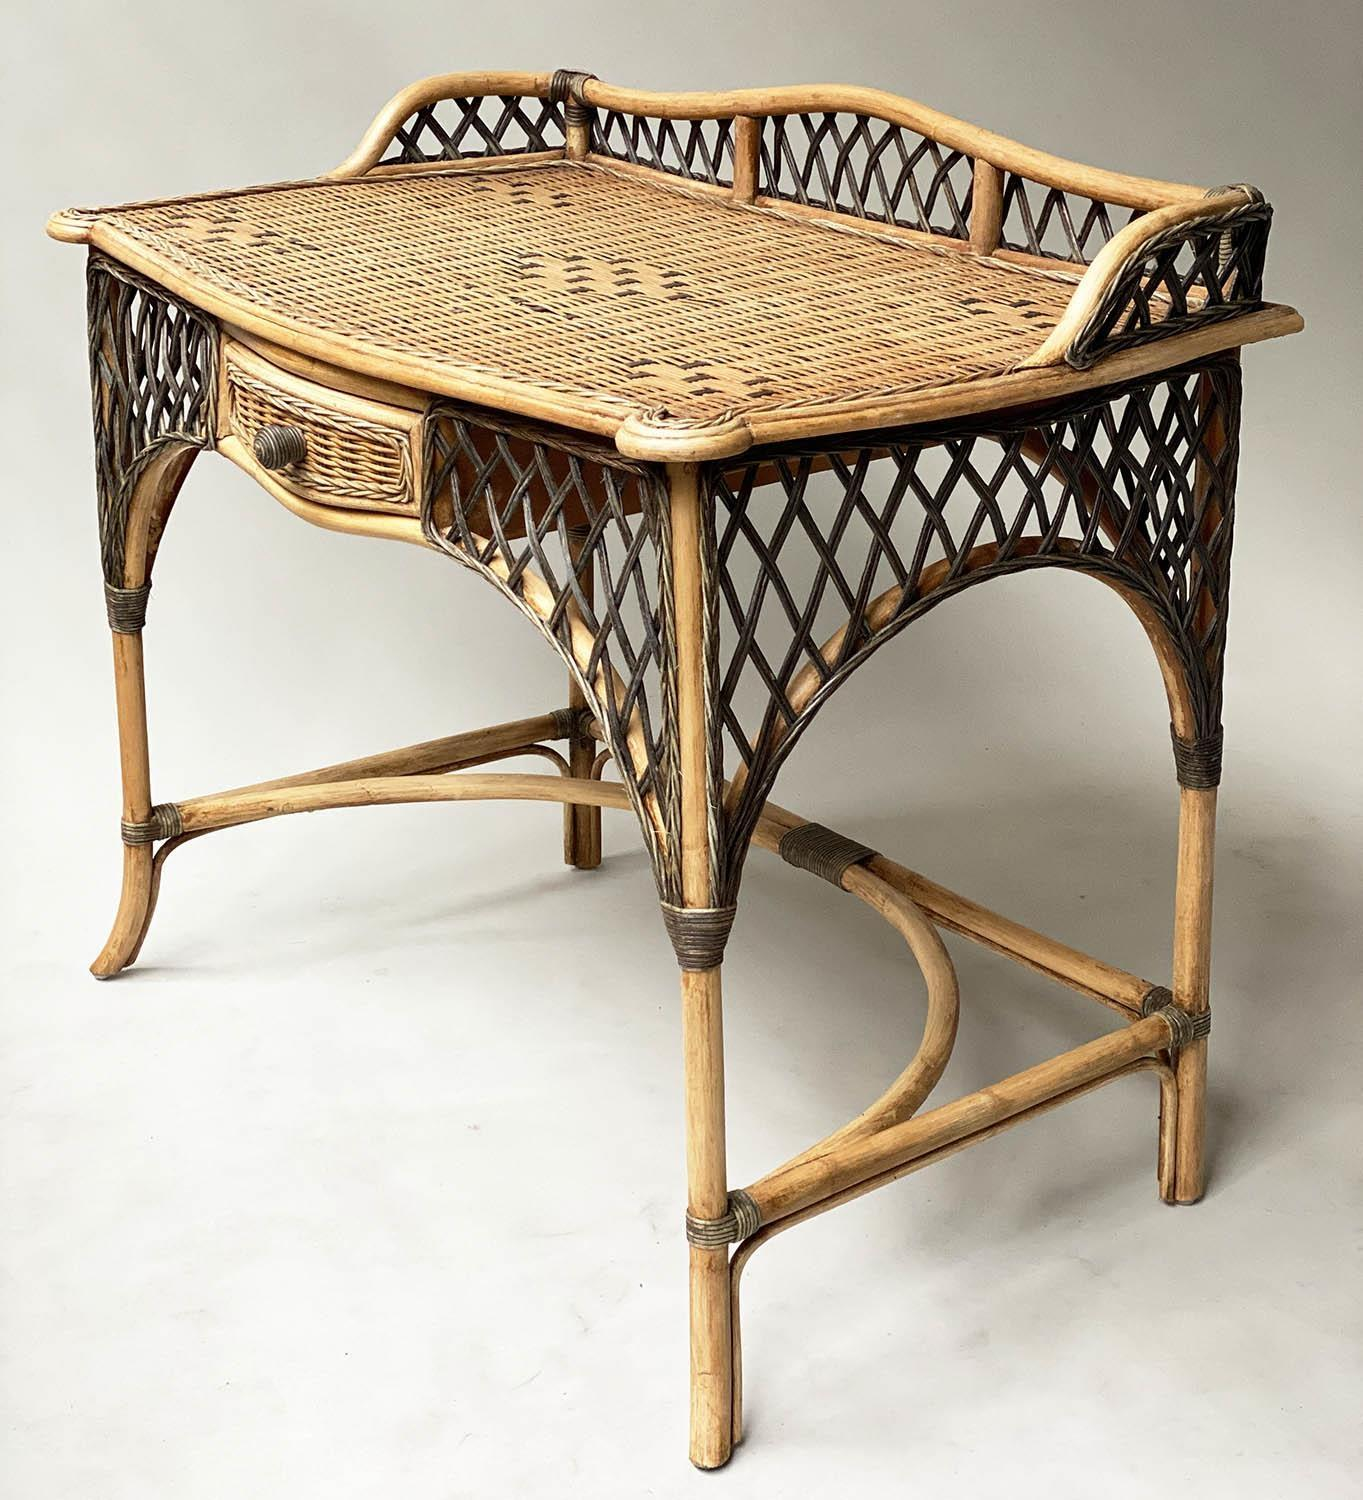 SIDE/WRITING TABLE, vintage Ralph Lauren style two tone rattan with gallery and frieze drawer, 103cm - Image 4 of 6